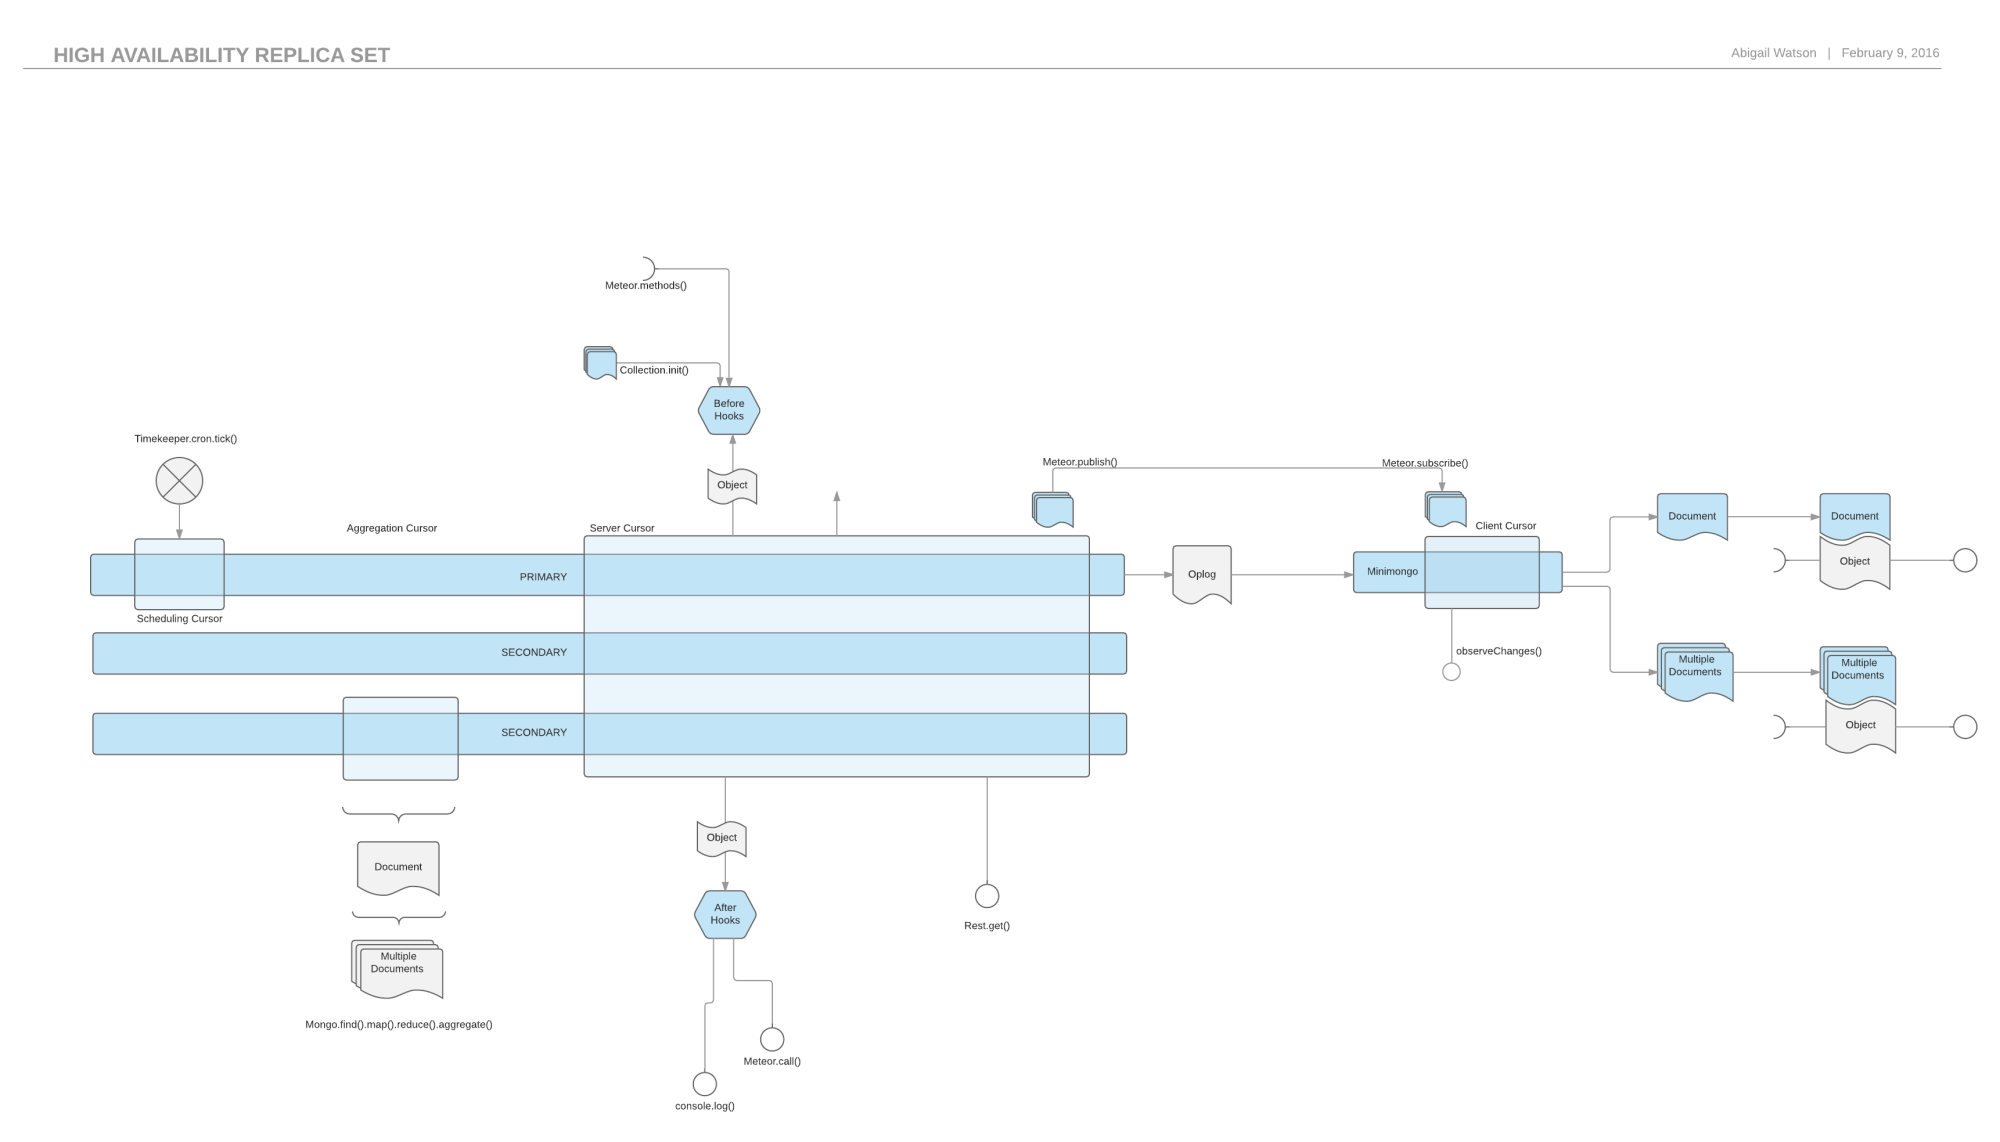 hight resolution of replica set diagram oauth sequence diagram